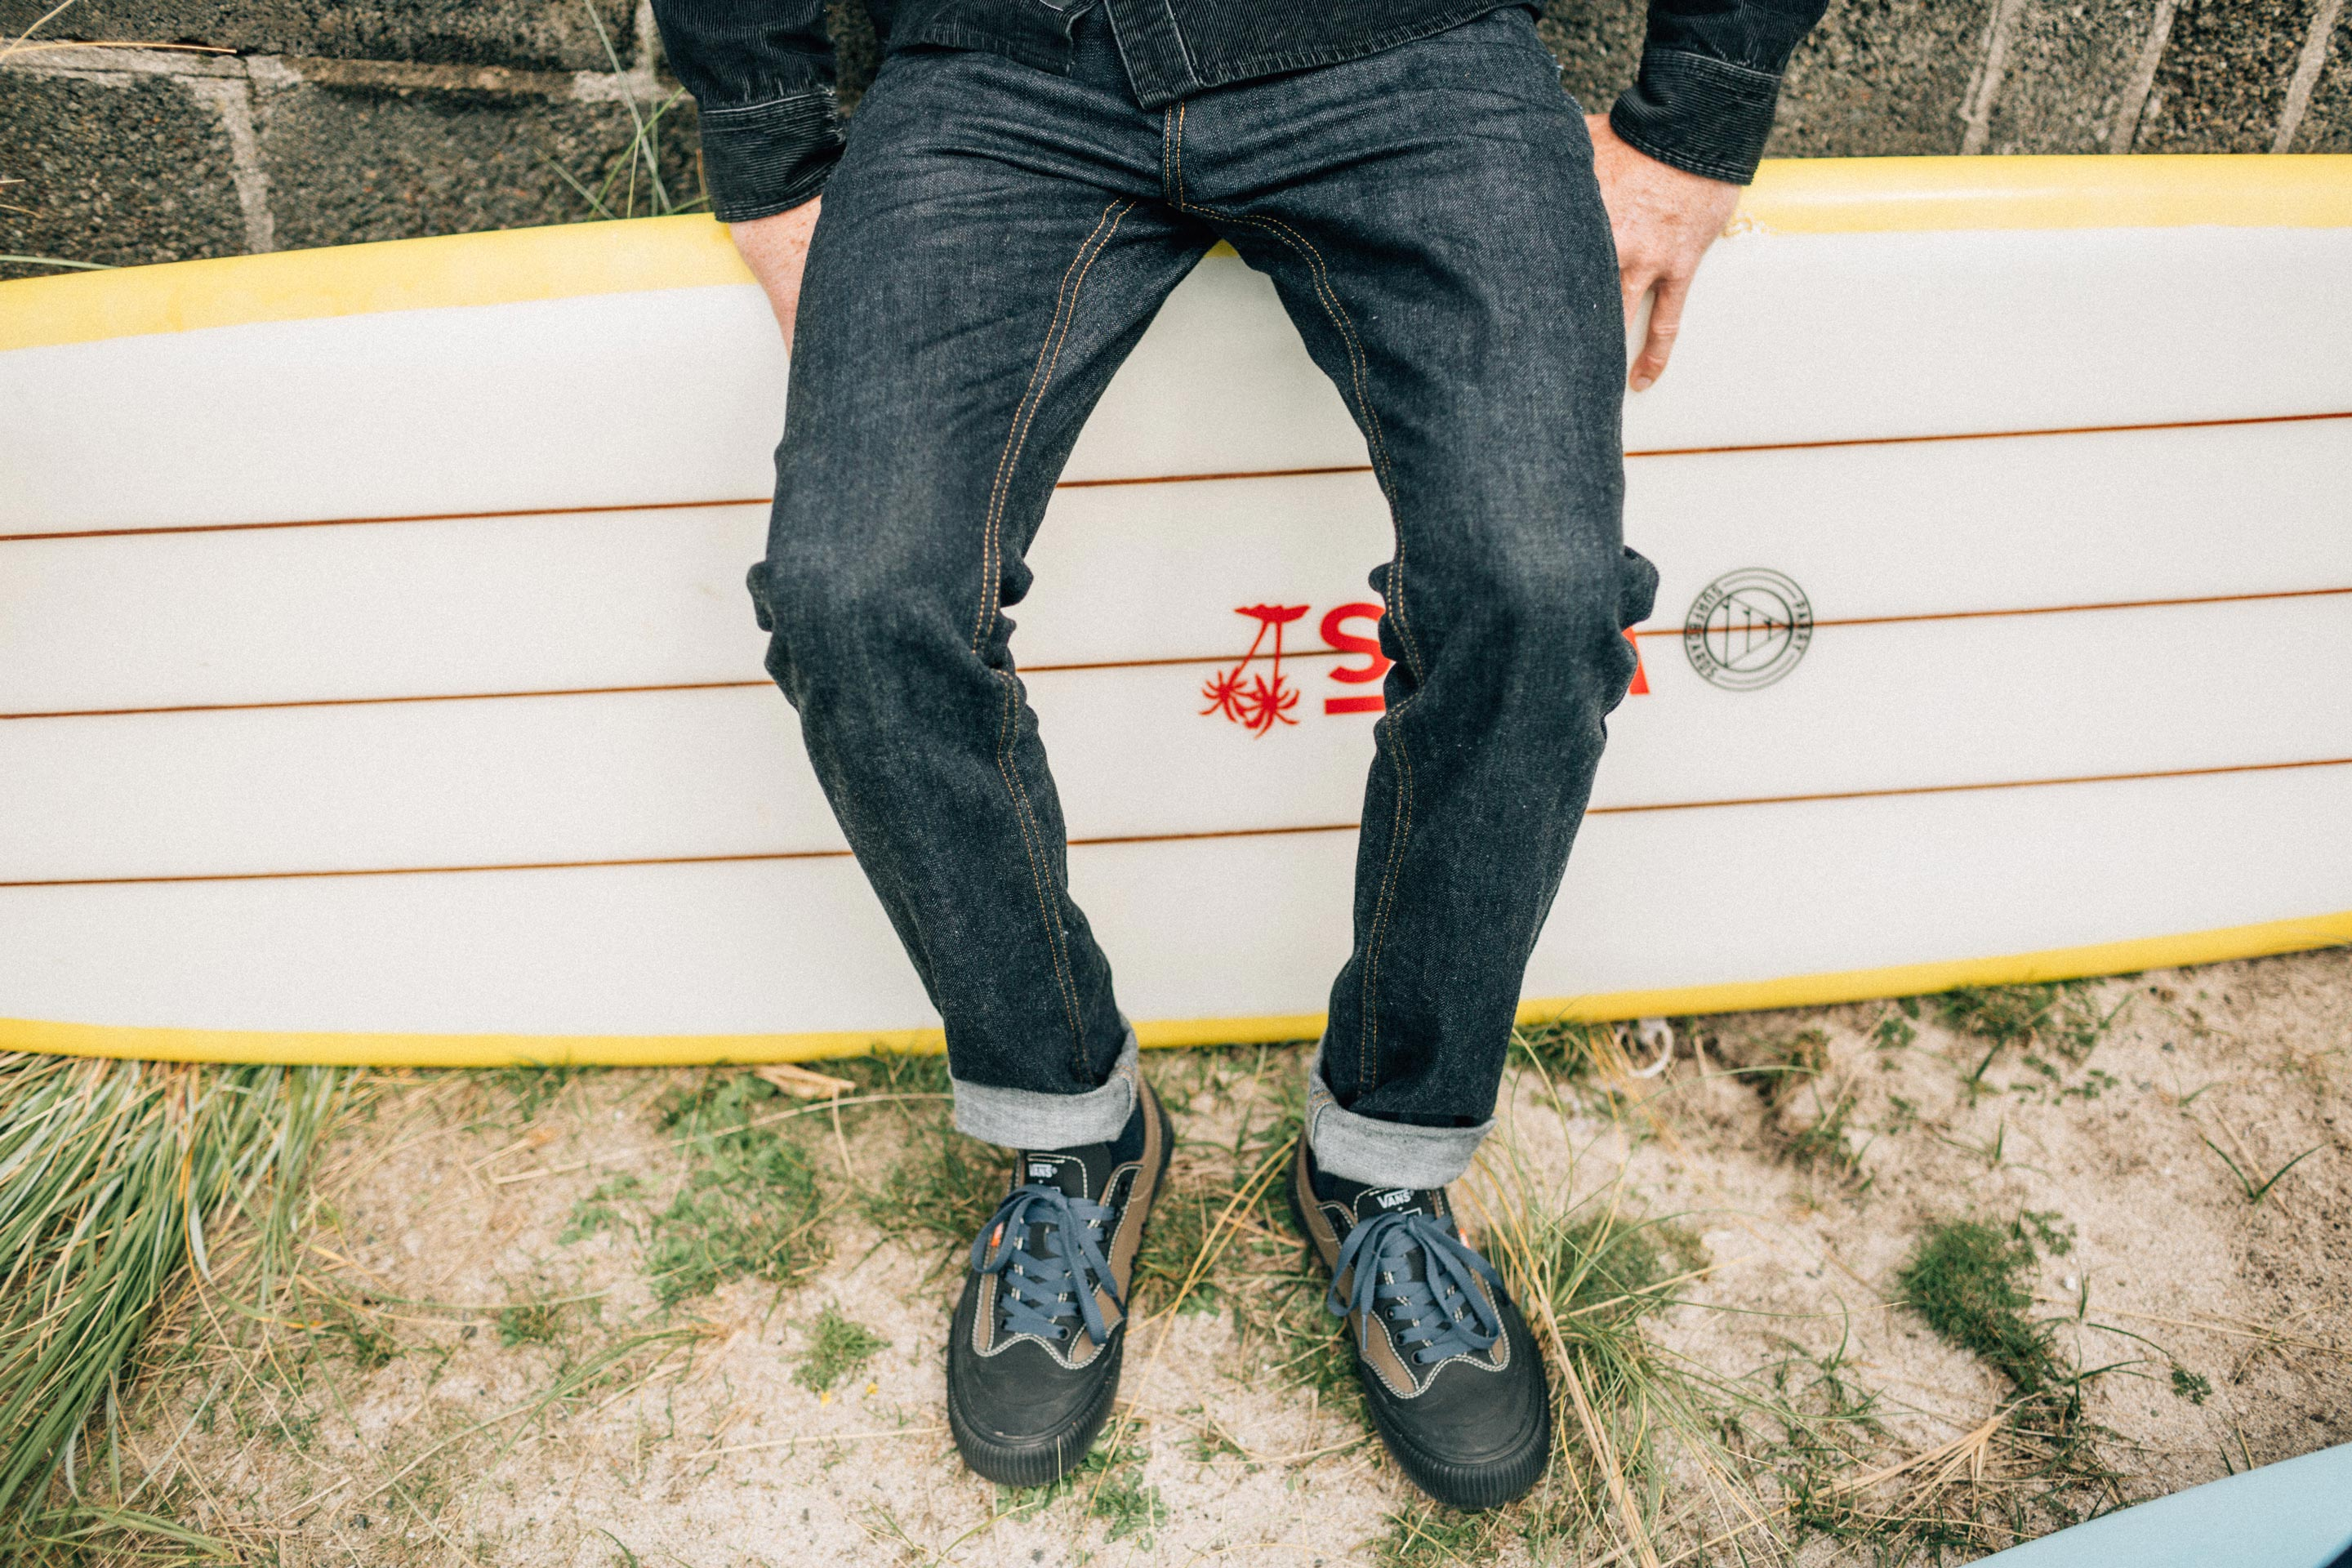 Vans + Finisterre editorial - James Parry with his longboard and his new vans destruct shoes